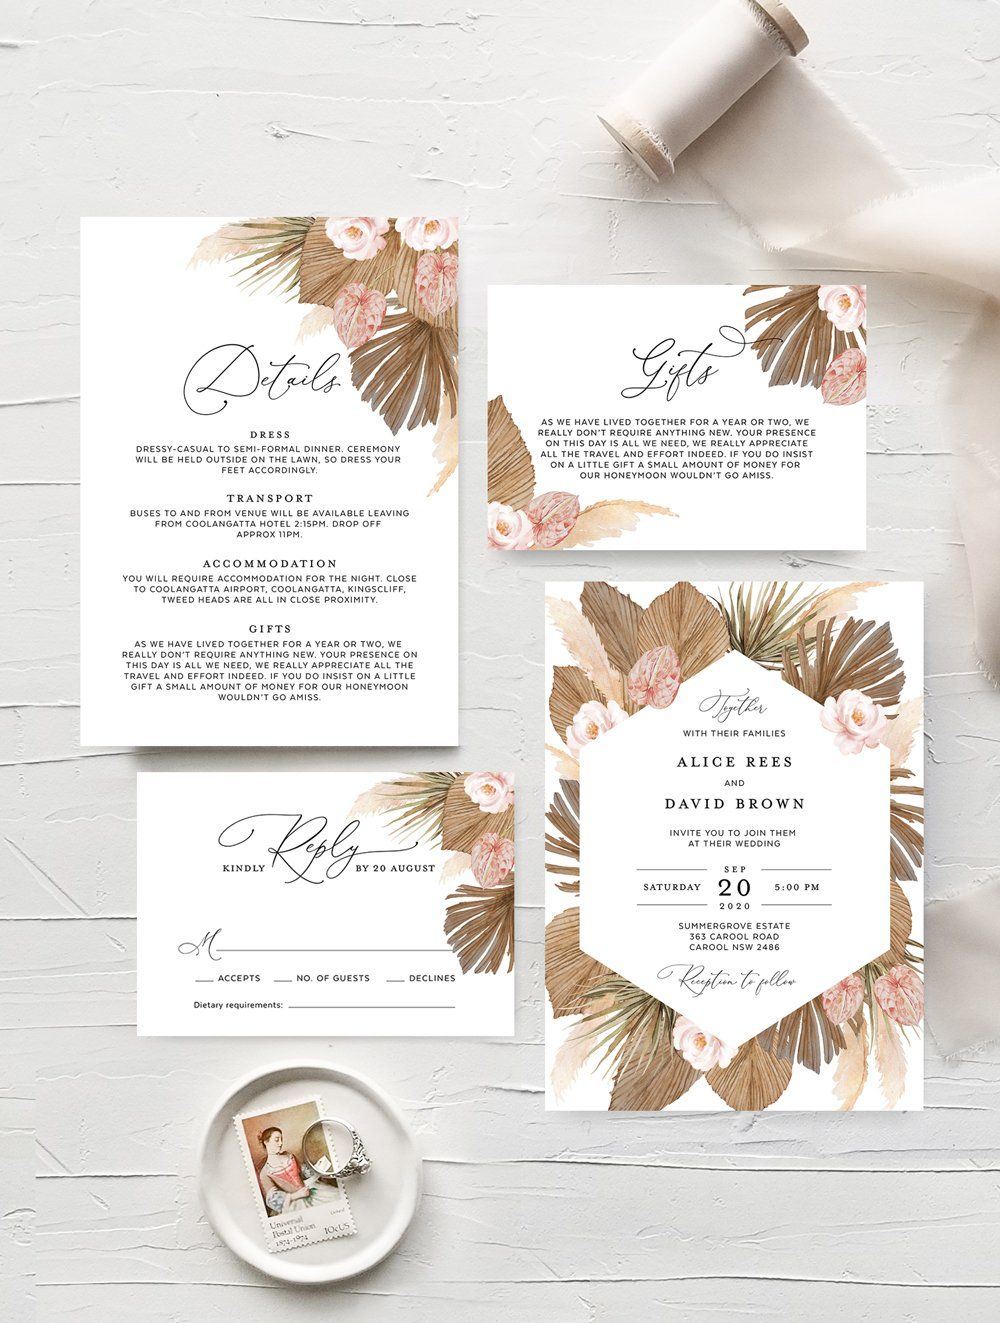 Pampas Grass Wedding Invitation Set Grass01 Digital Wedding Invitations Design Wedding Invitation Design Wedding Invitation Sets